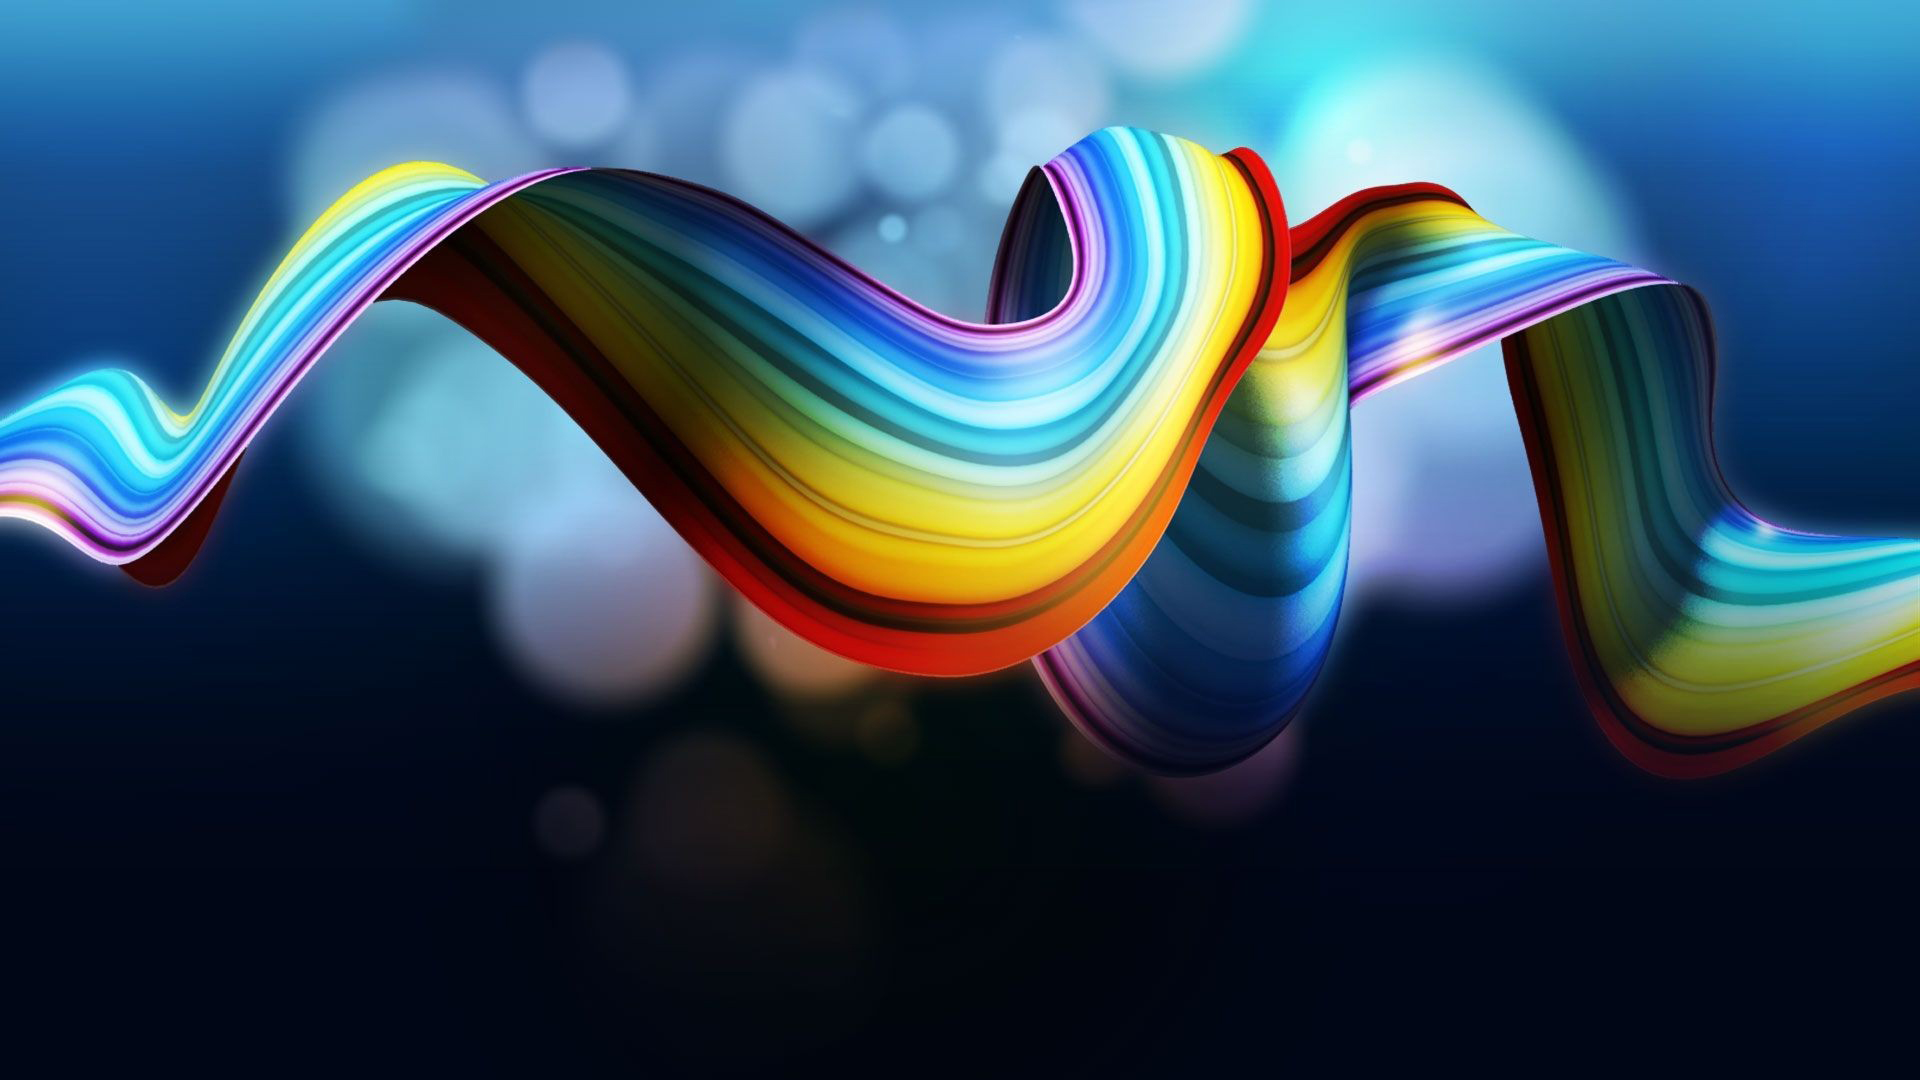 25 hd rainbow wallpapers 3d design free